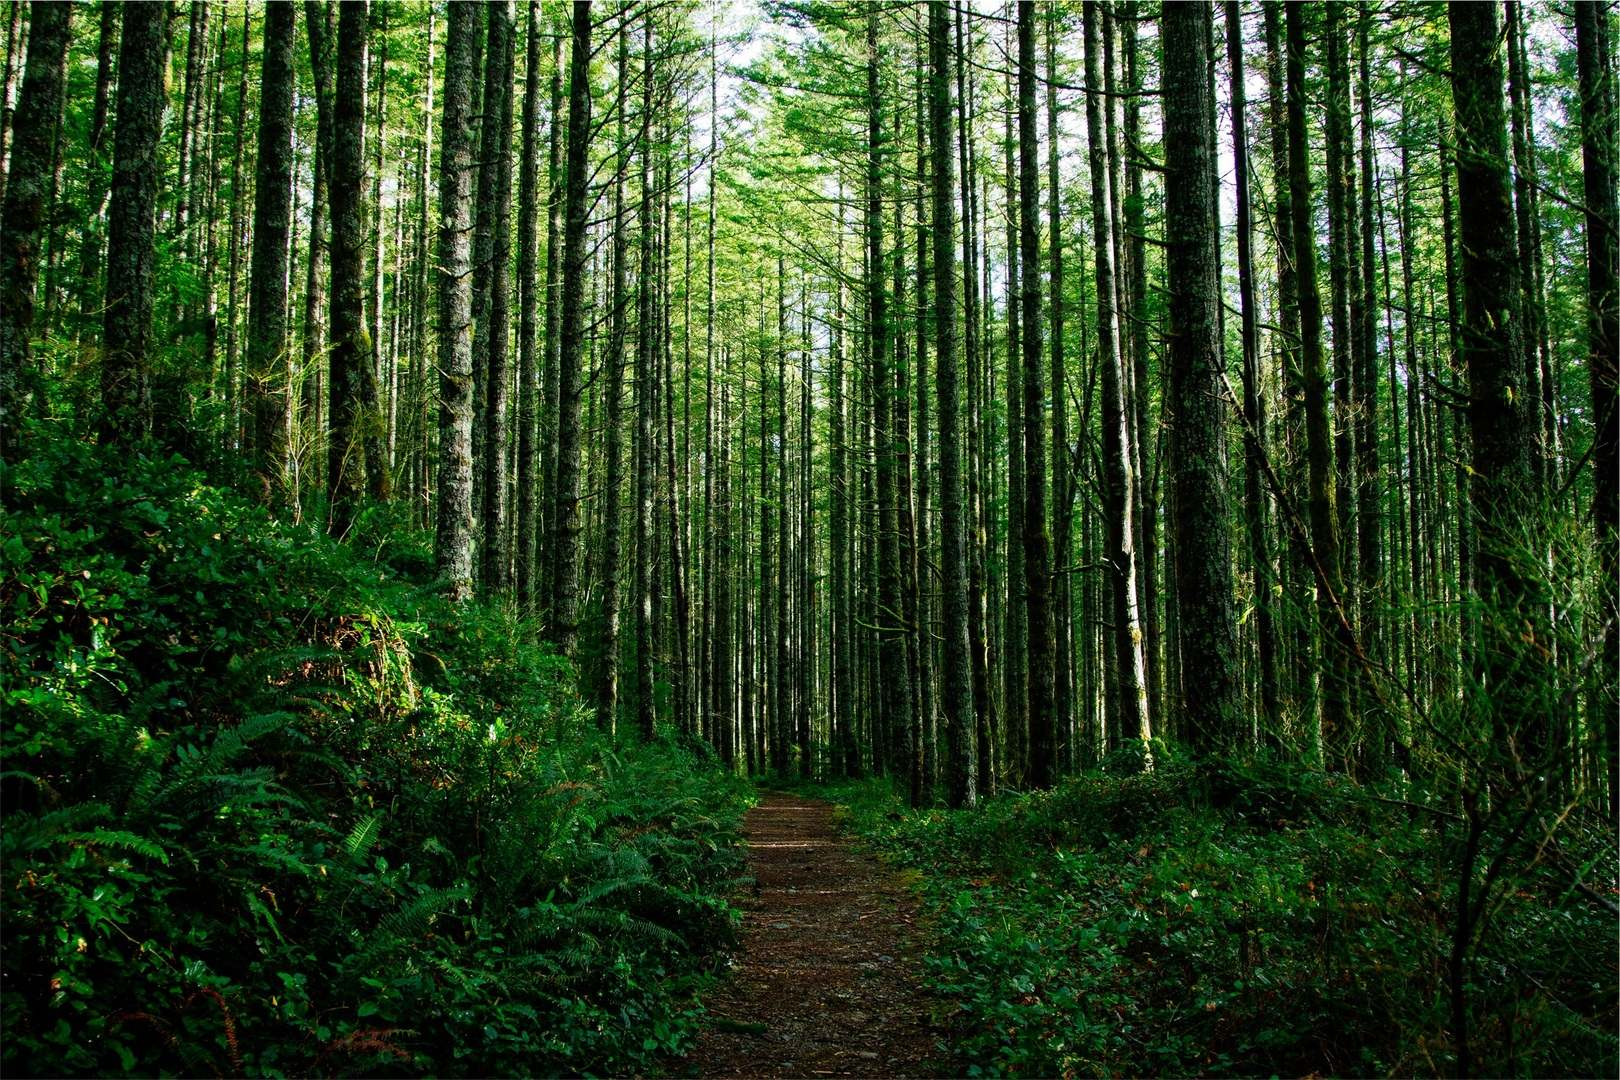 tree-nature-forest-branch-plant-trail